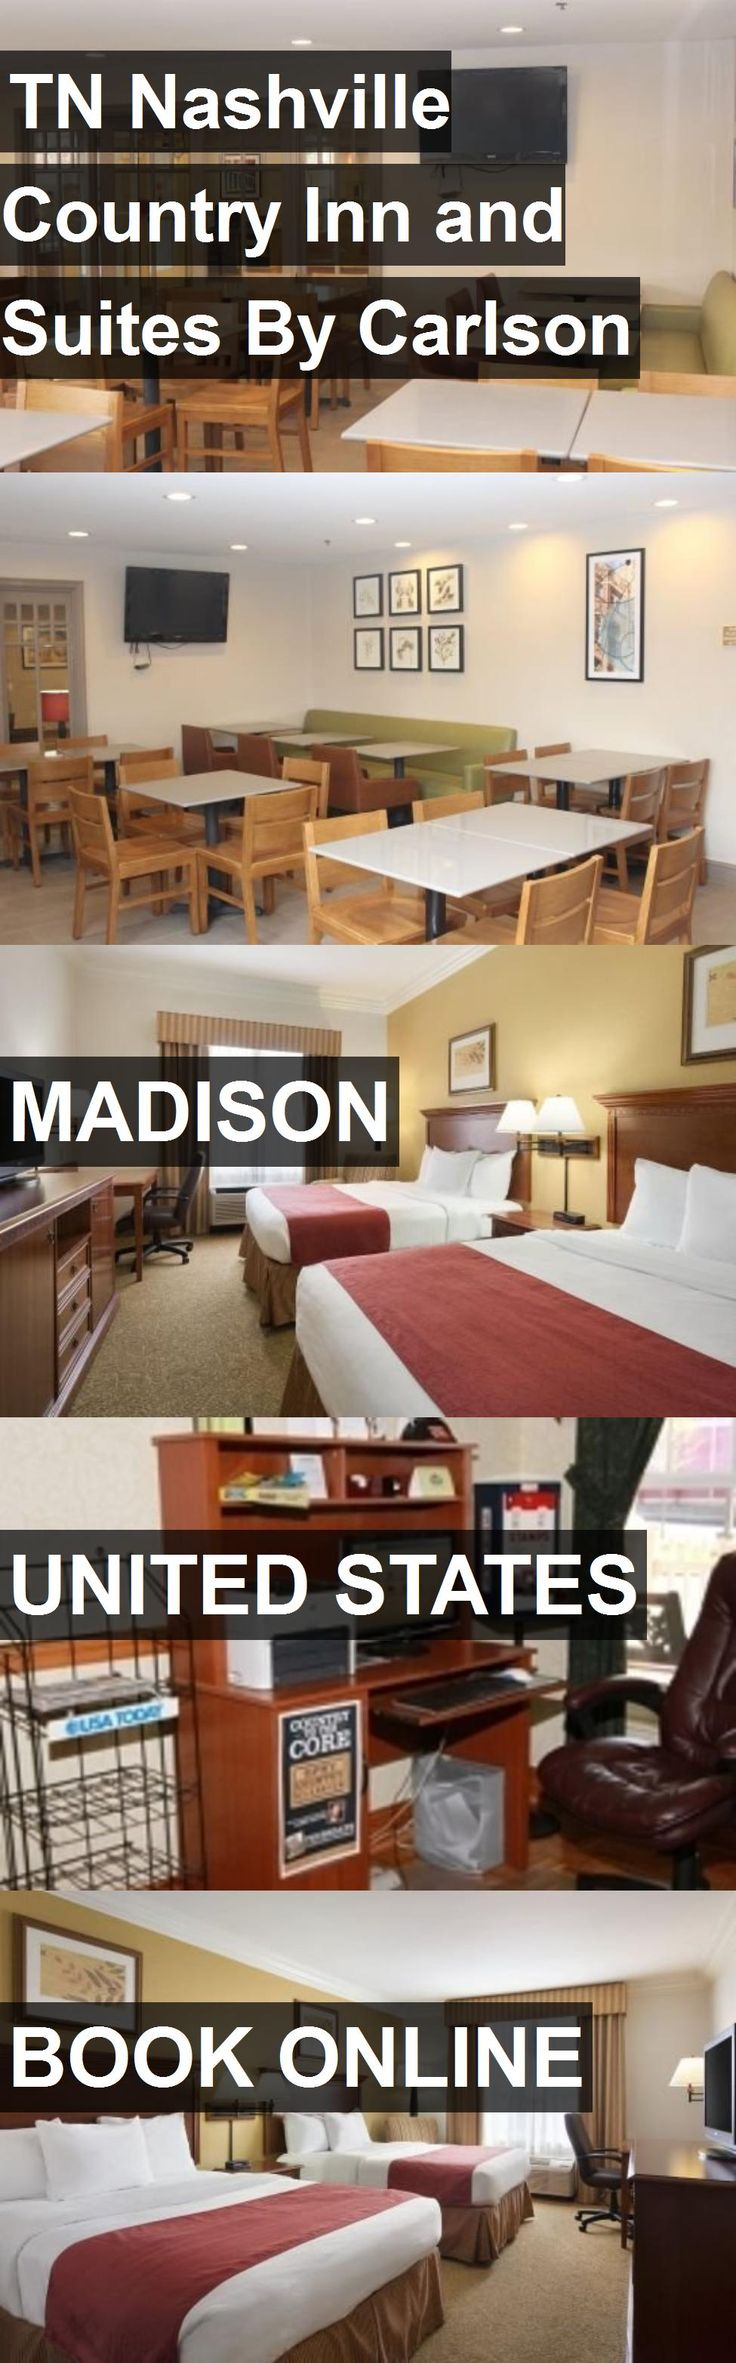 Hotel TN Nashville Country Inn and Suites By Carlson in Madison, United States. For more information, photos, reviews and best prices please follow the link. #UnitedStates #Madison #travel #vacation #hotel